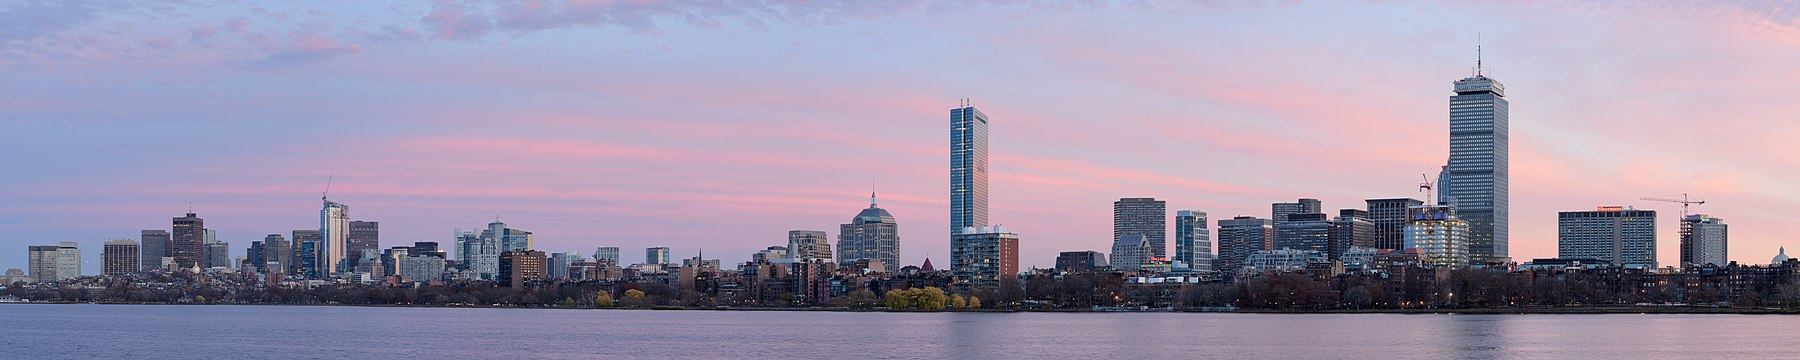 Sunset view of the Boston skyline and Charles River